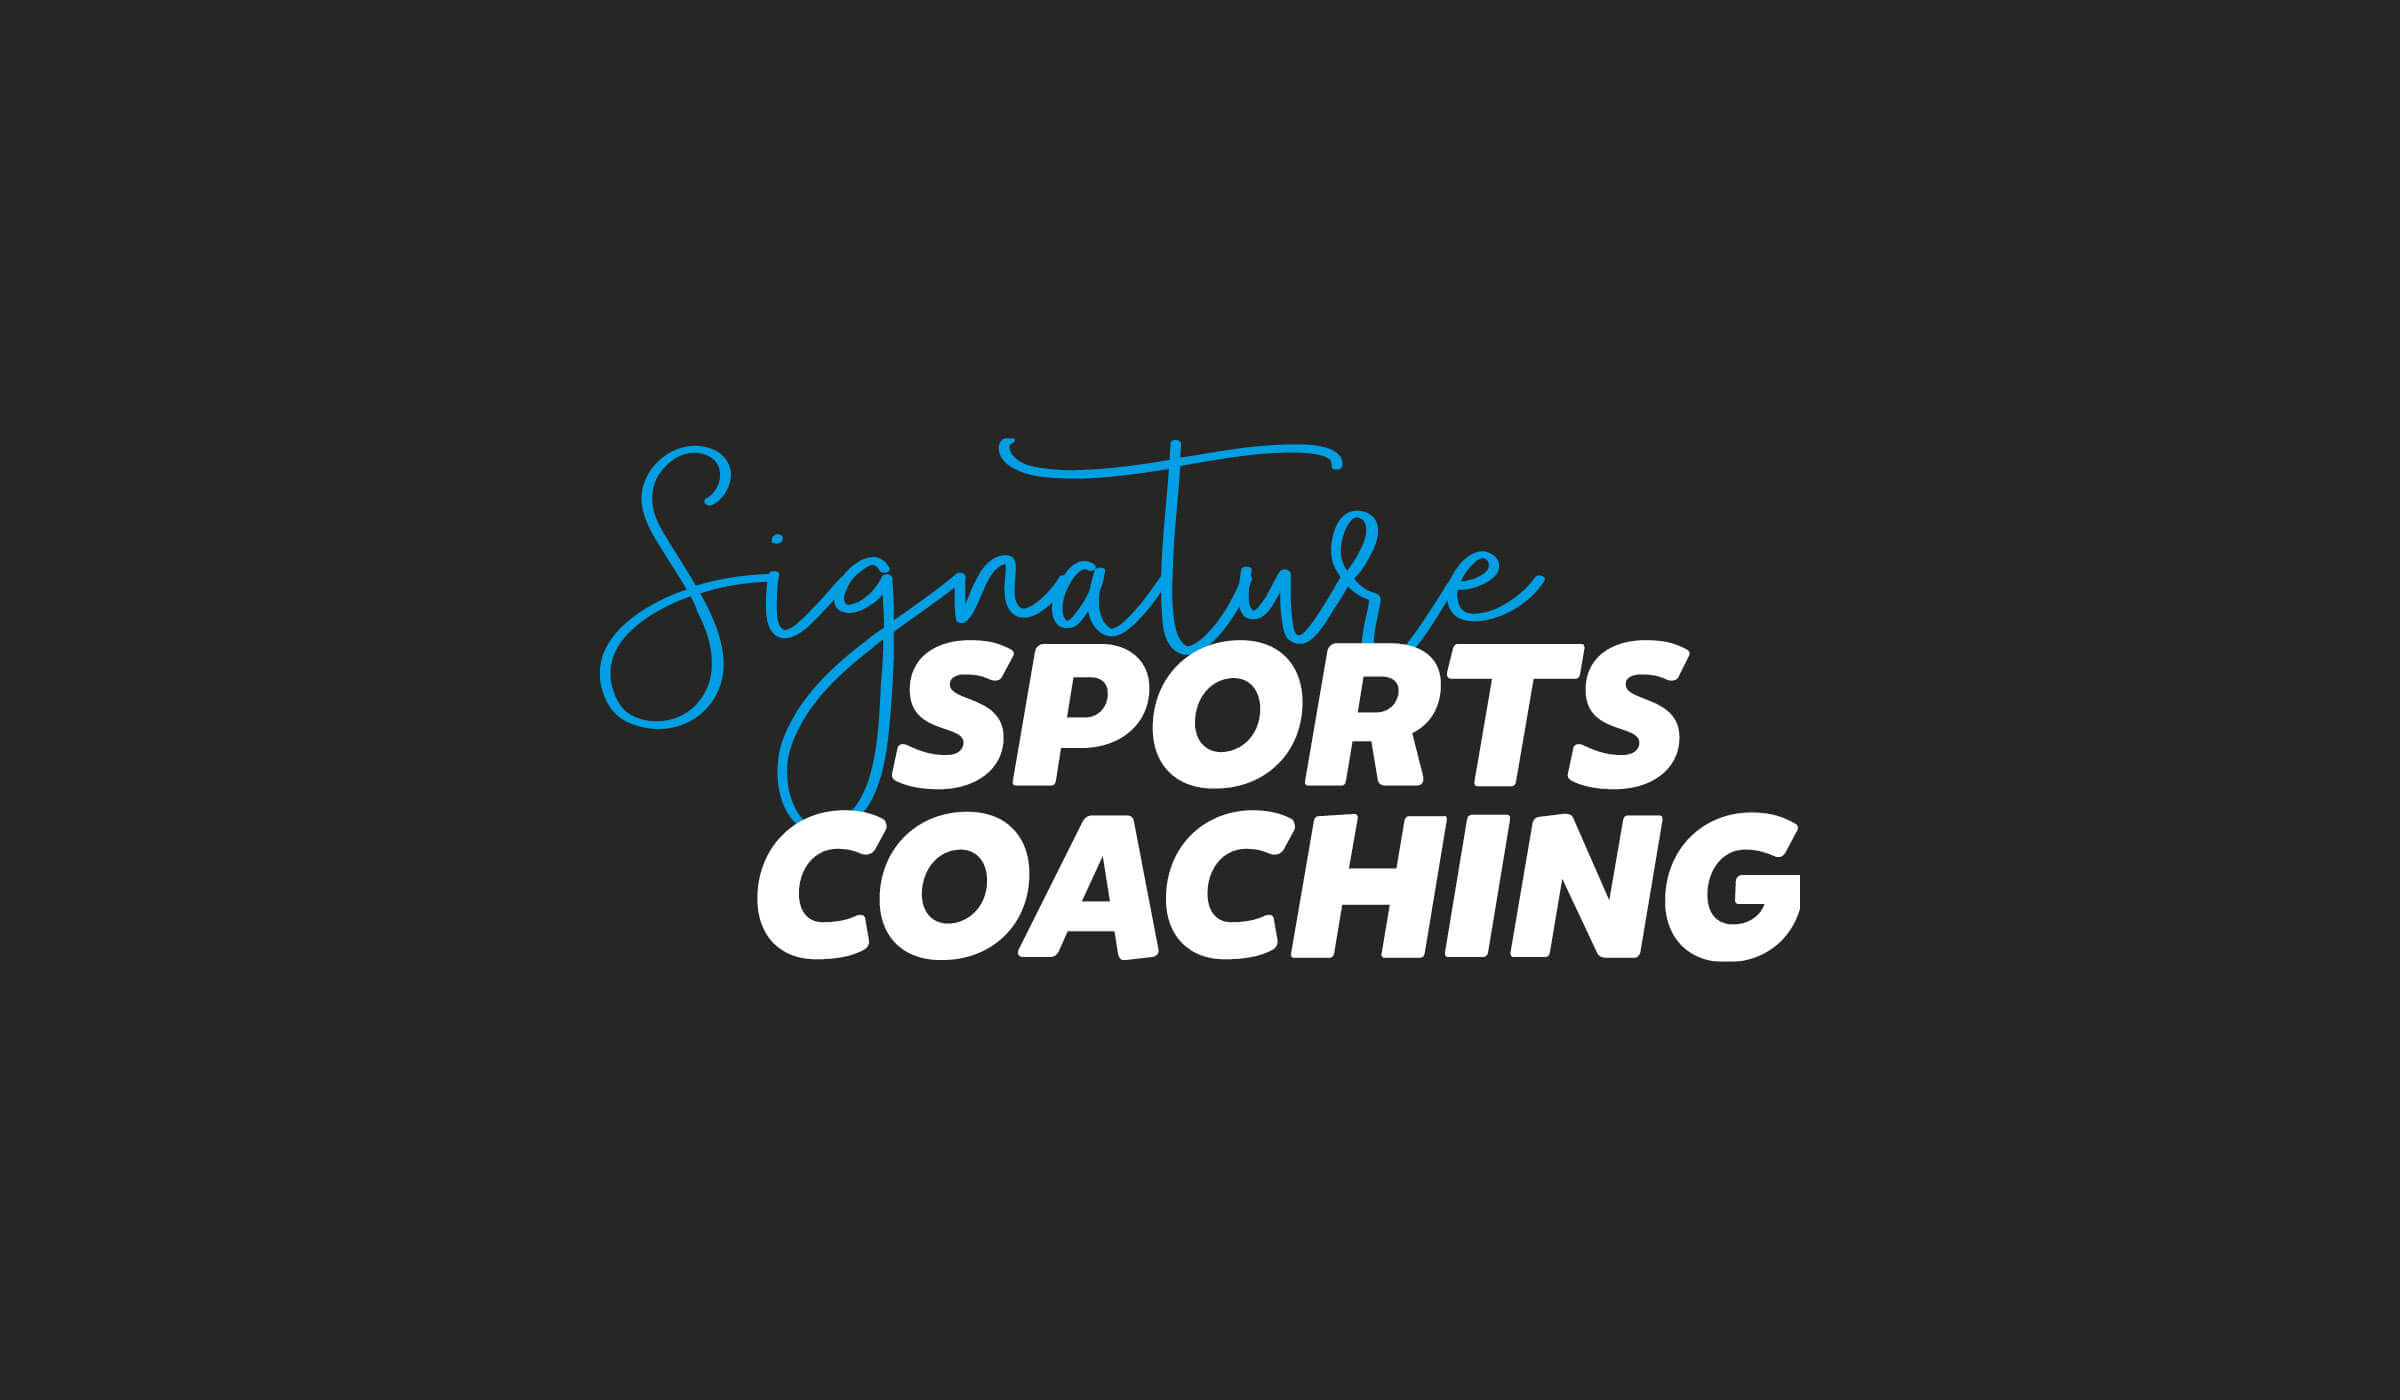 Bristol sports coach logo design